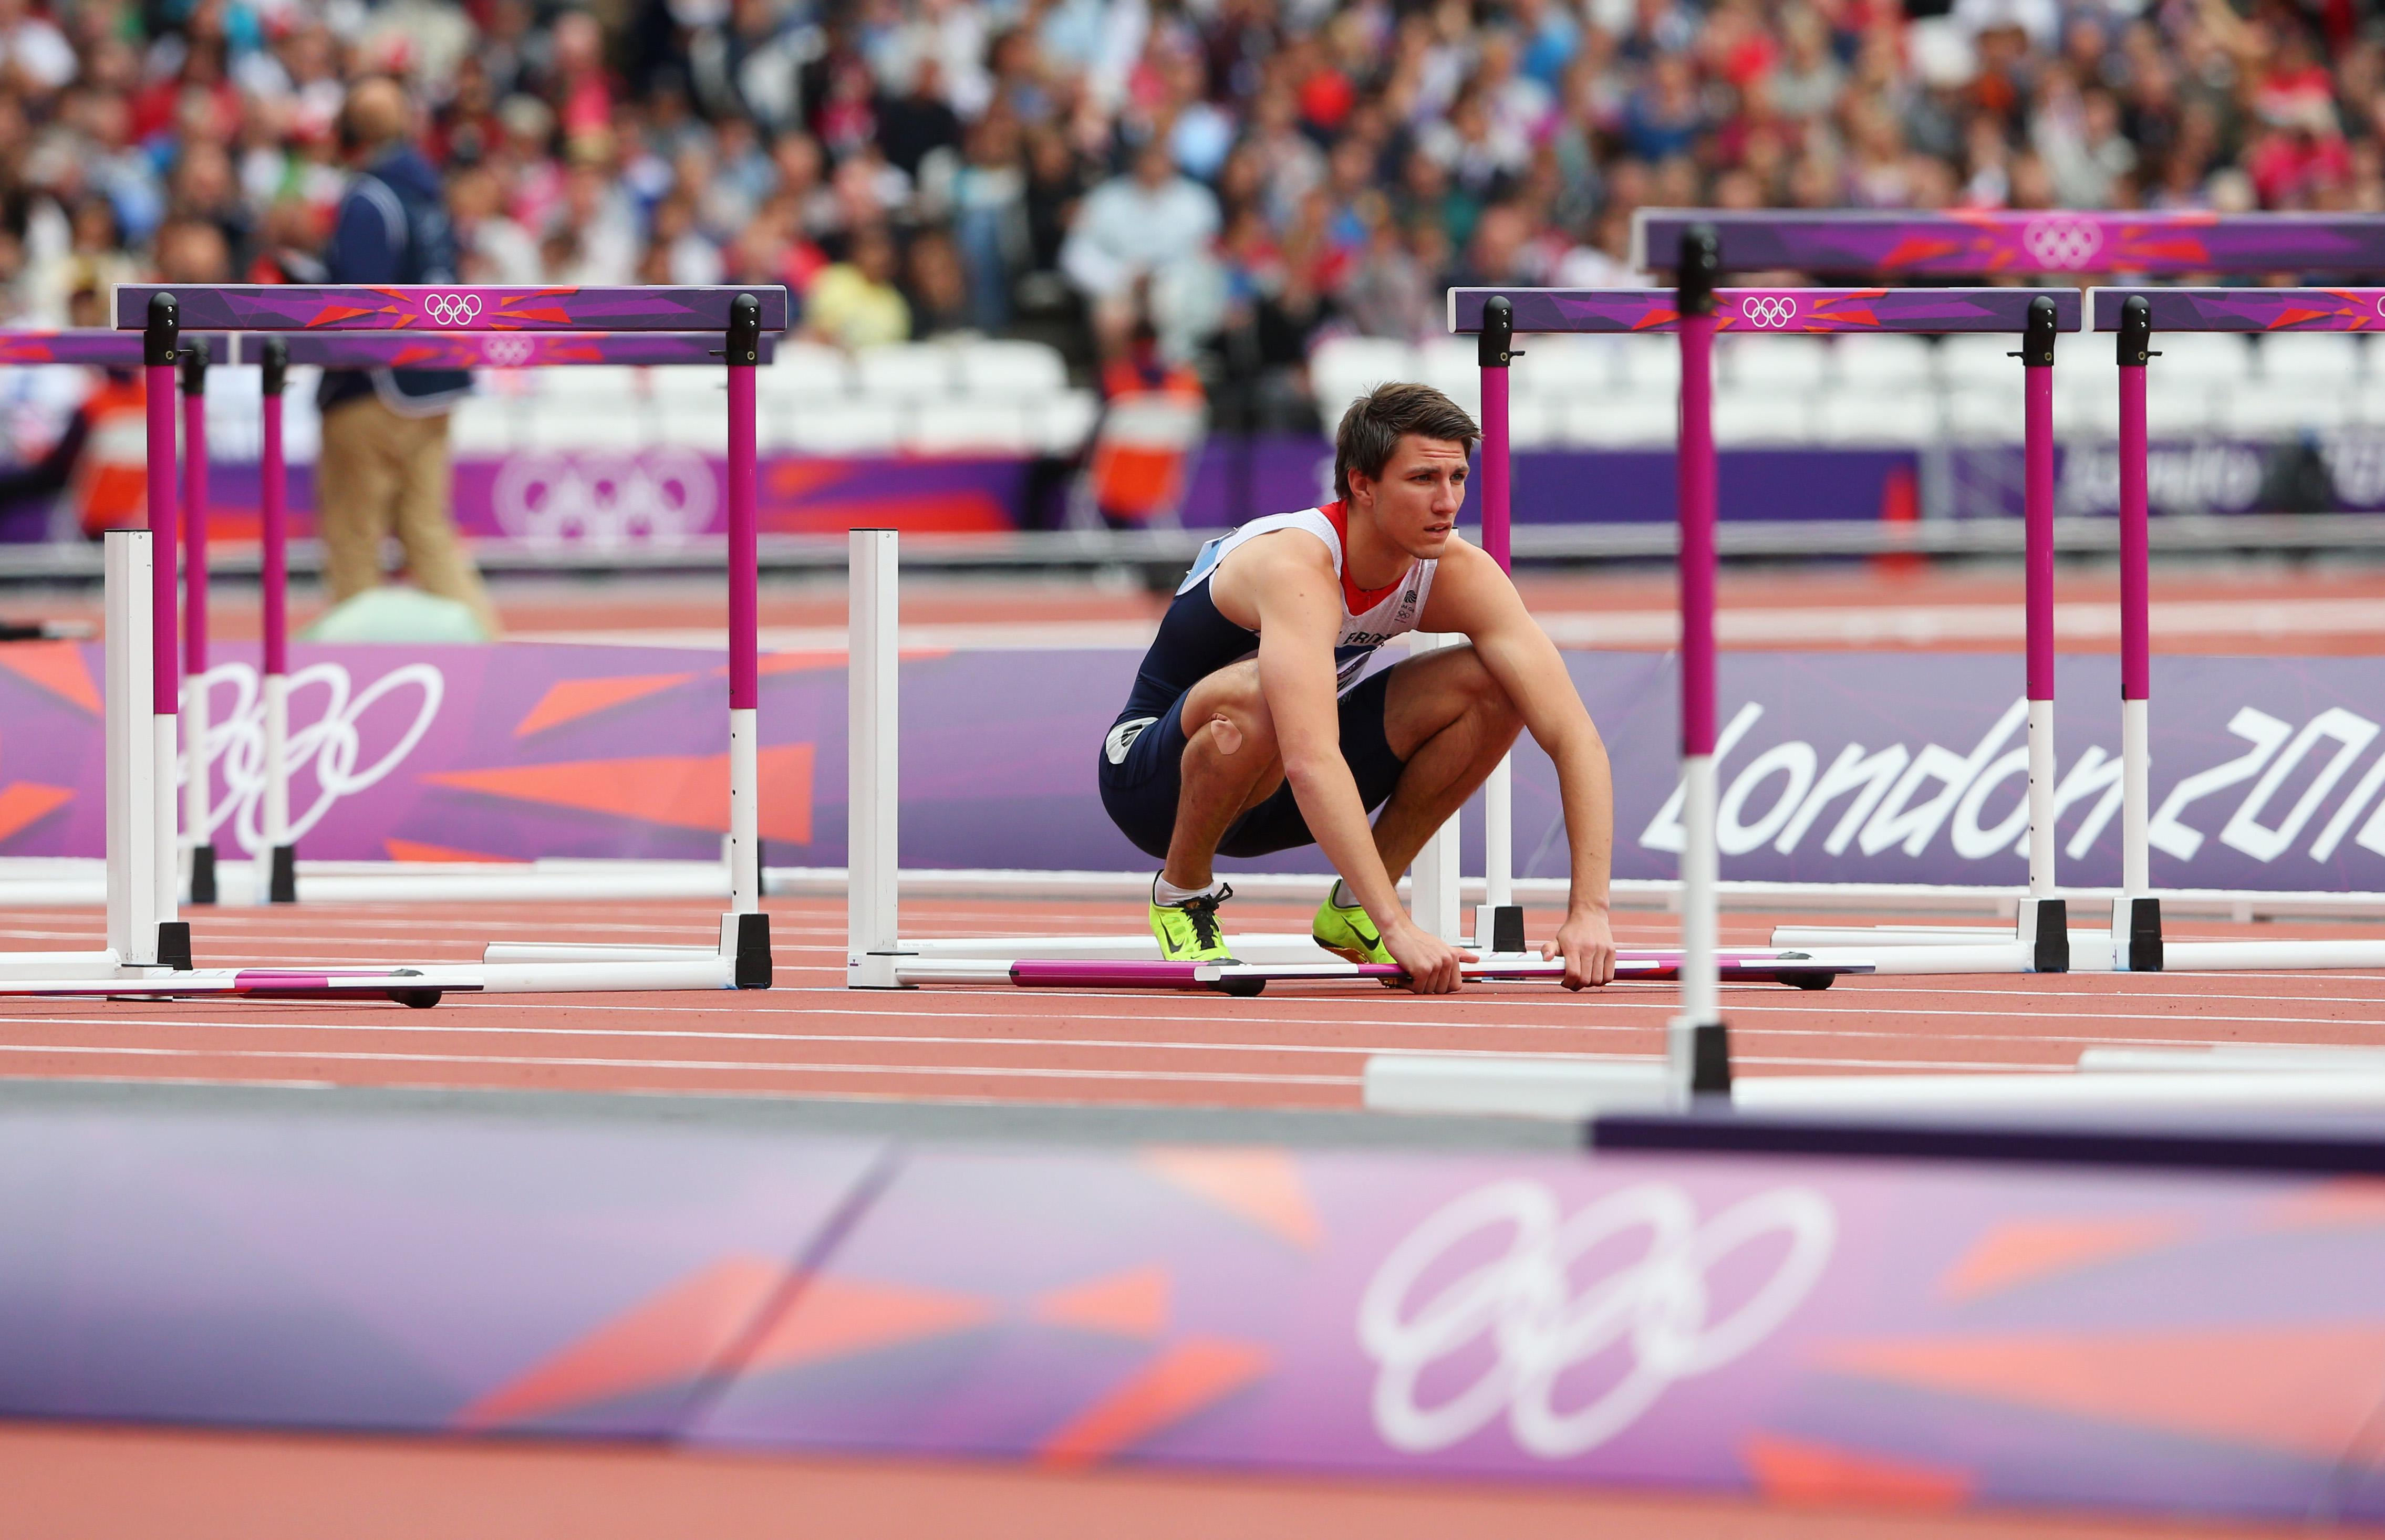 Pozzi suffered a hamstring injury as he set off from the blocks in the Olympics in 2012